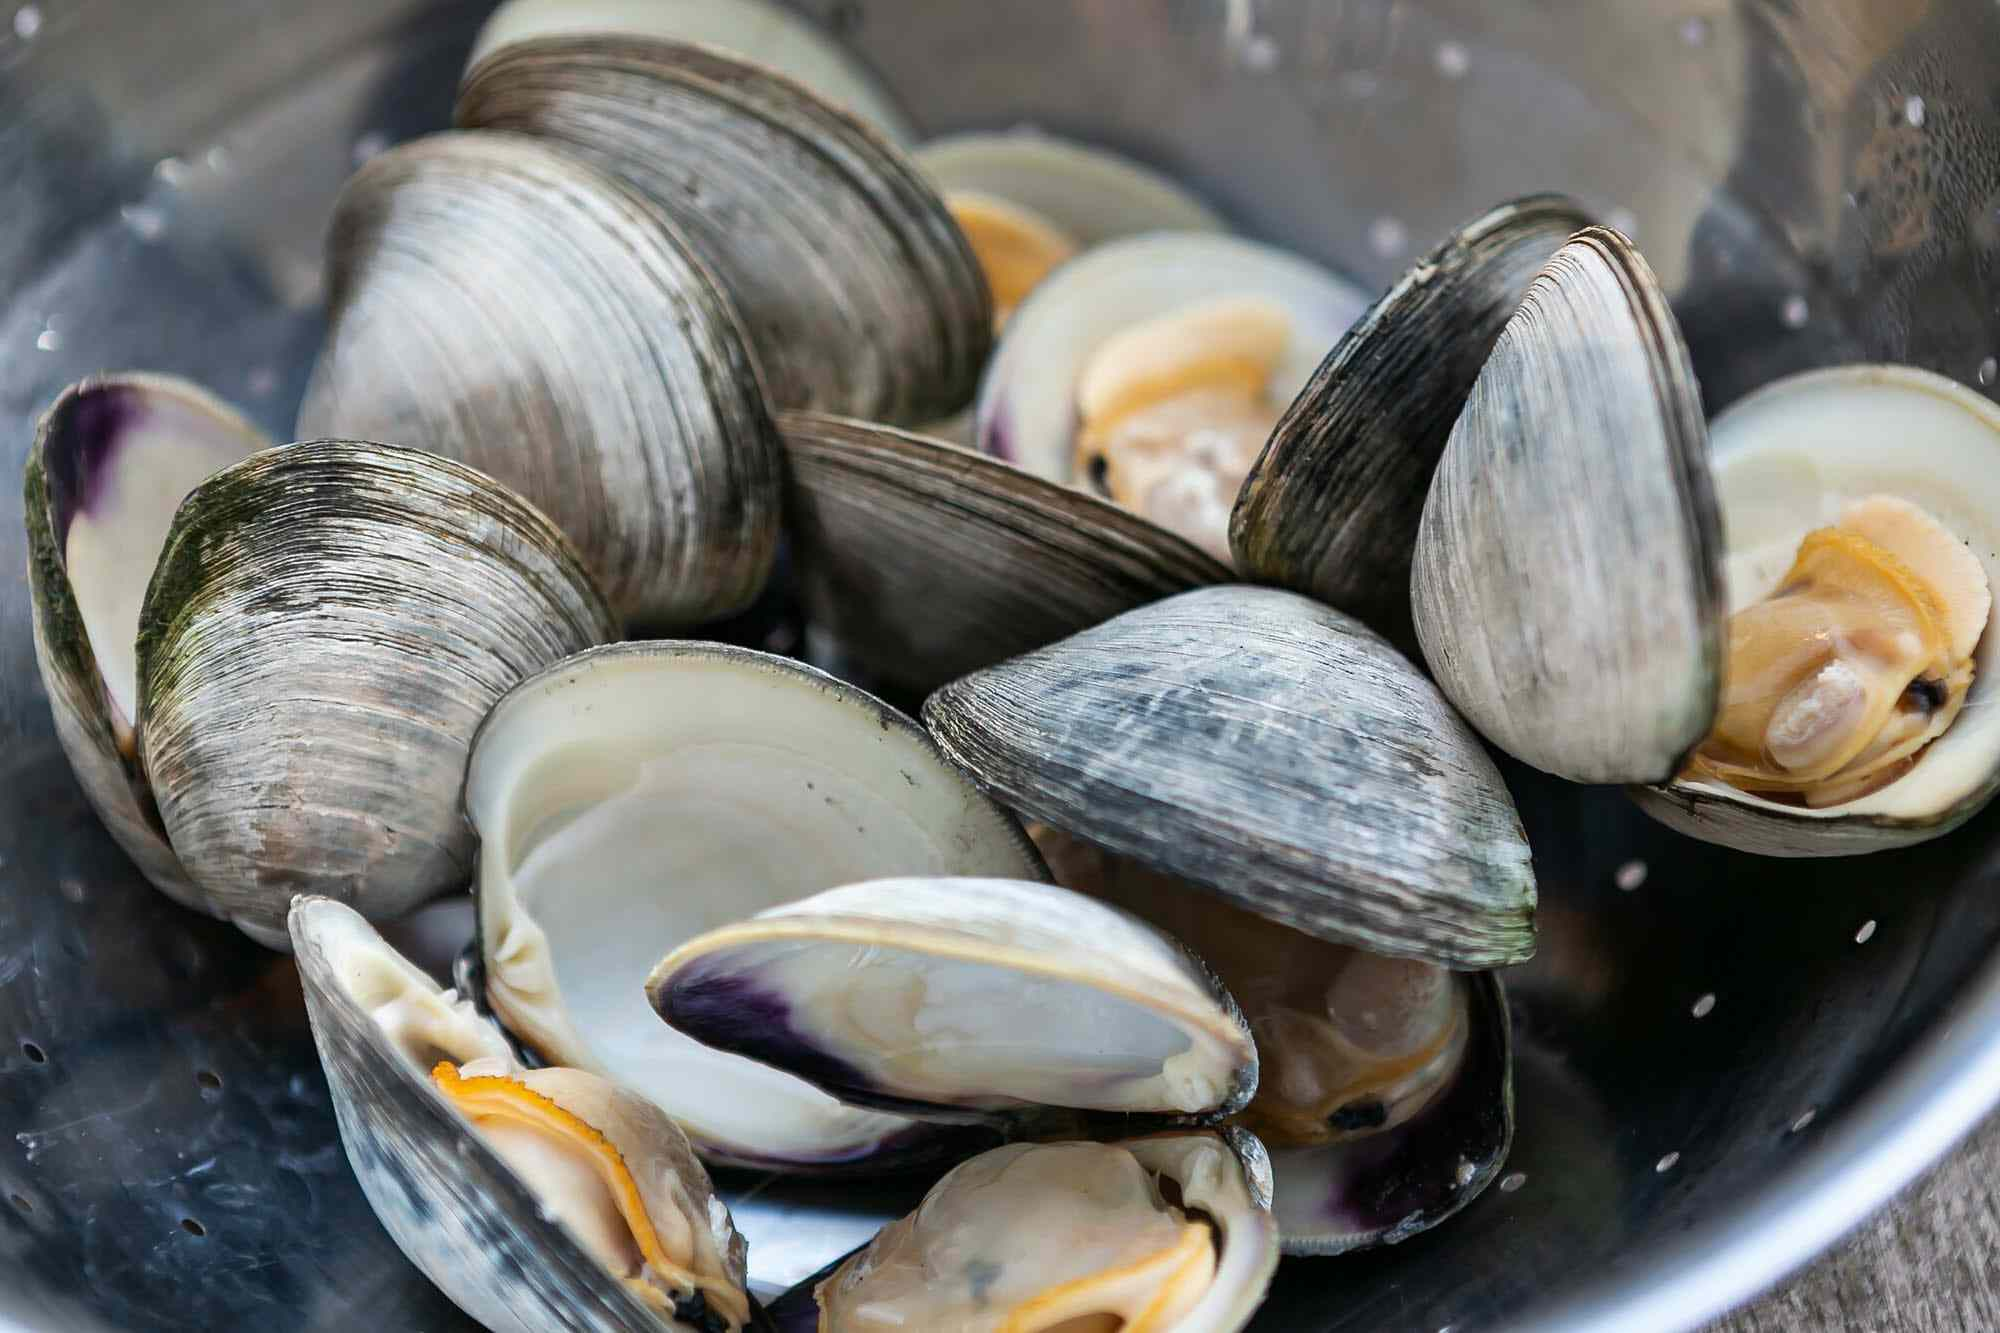 Cooked clams in a colander for everything you need to know about clams.